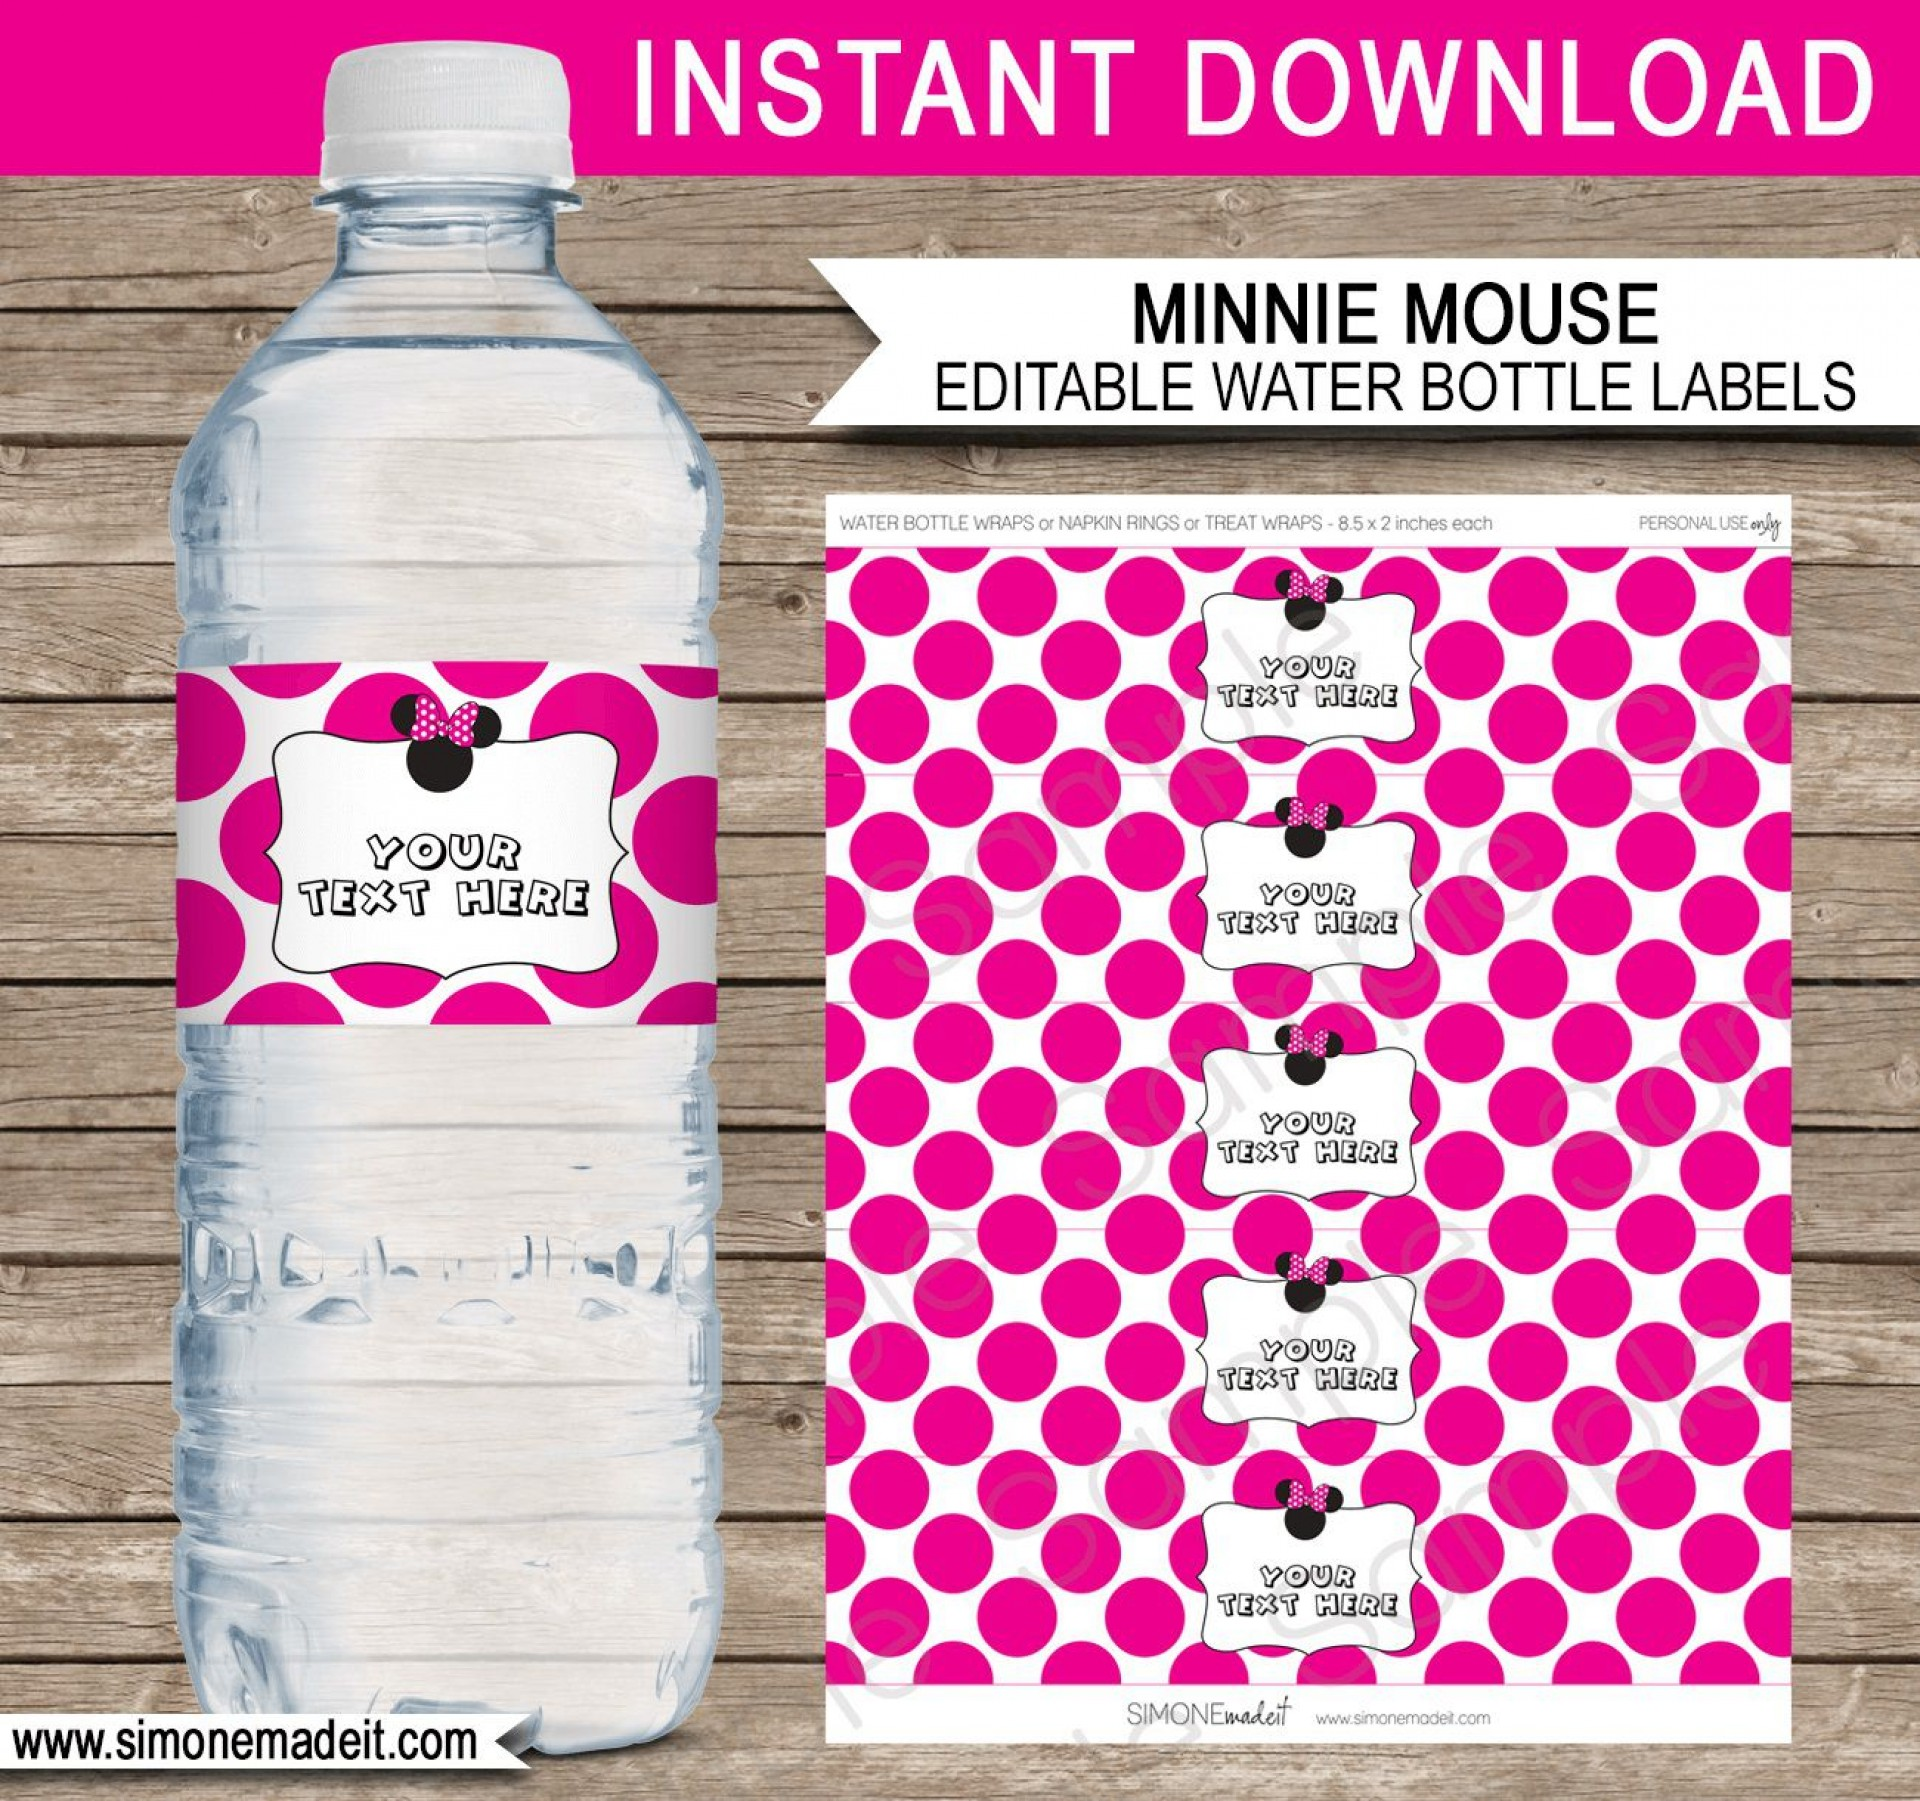 007 Impressive Water Bottle Label Template Example  Free Photoshop Baby Shower Psd1920